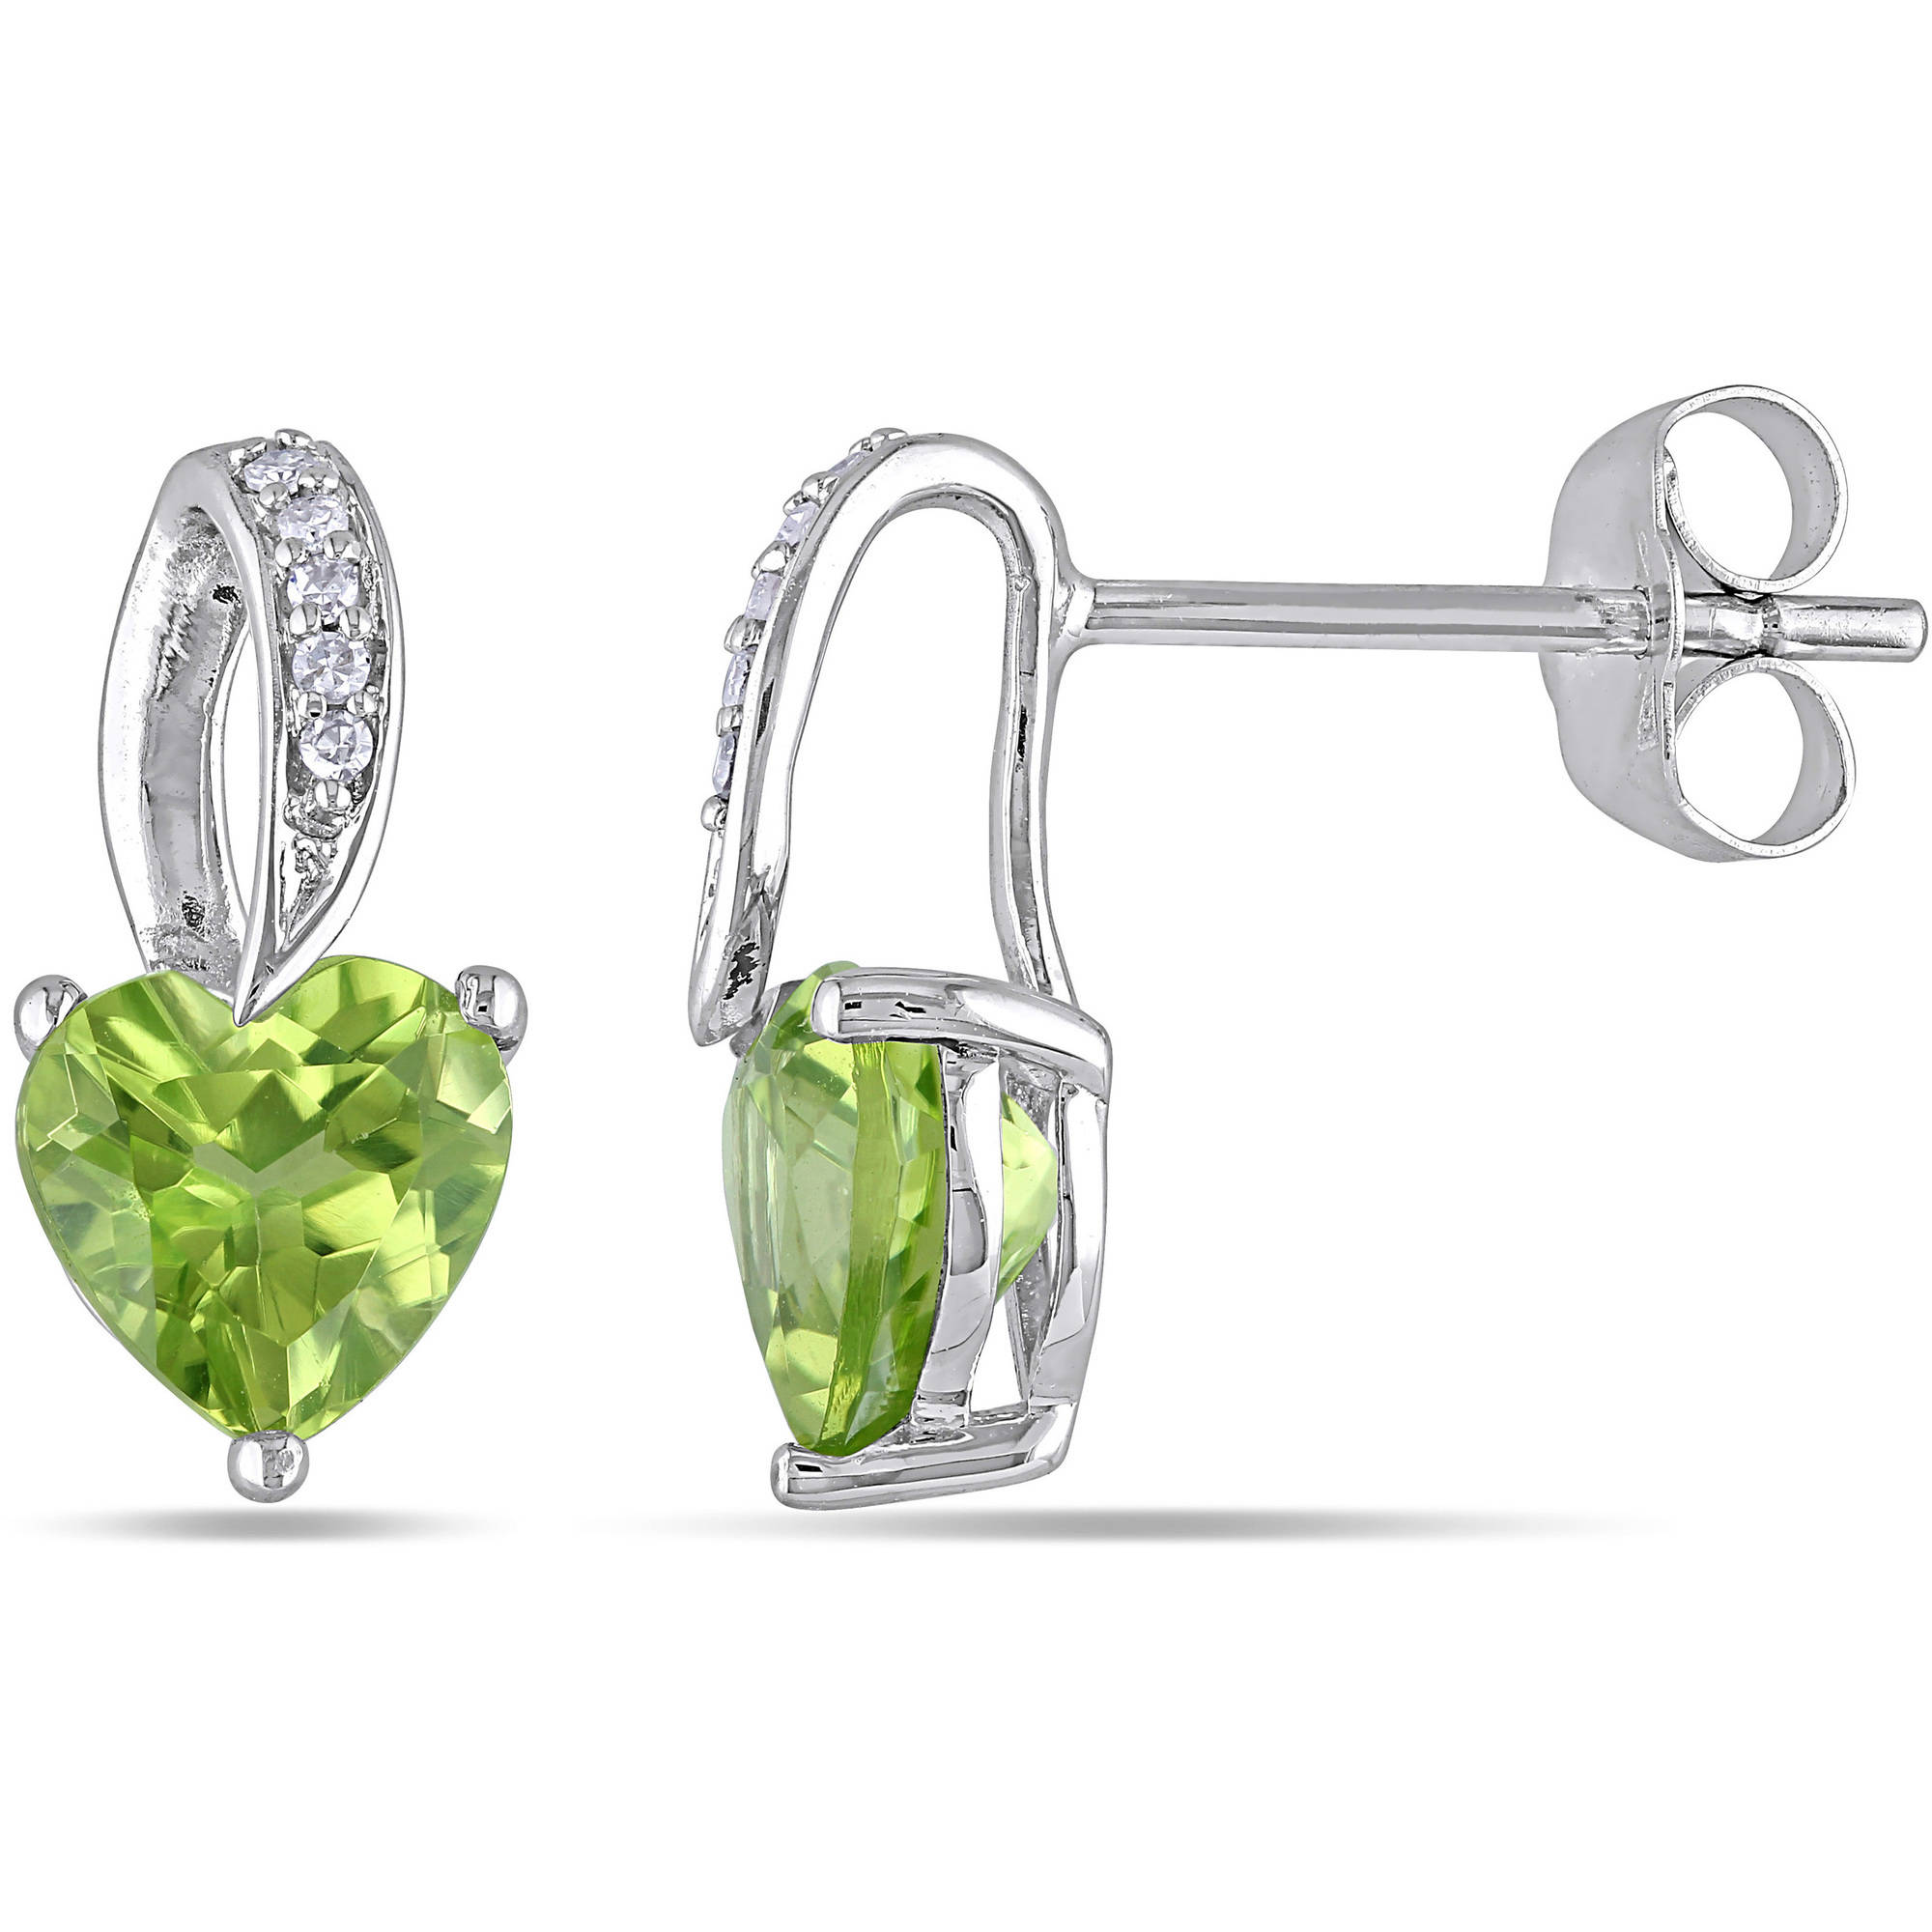 Tangelo 1-3/4 Carat T.G.W. Peridot and Diamond-Accent 10kt White Gold Heart Earrings